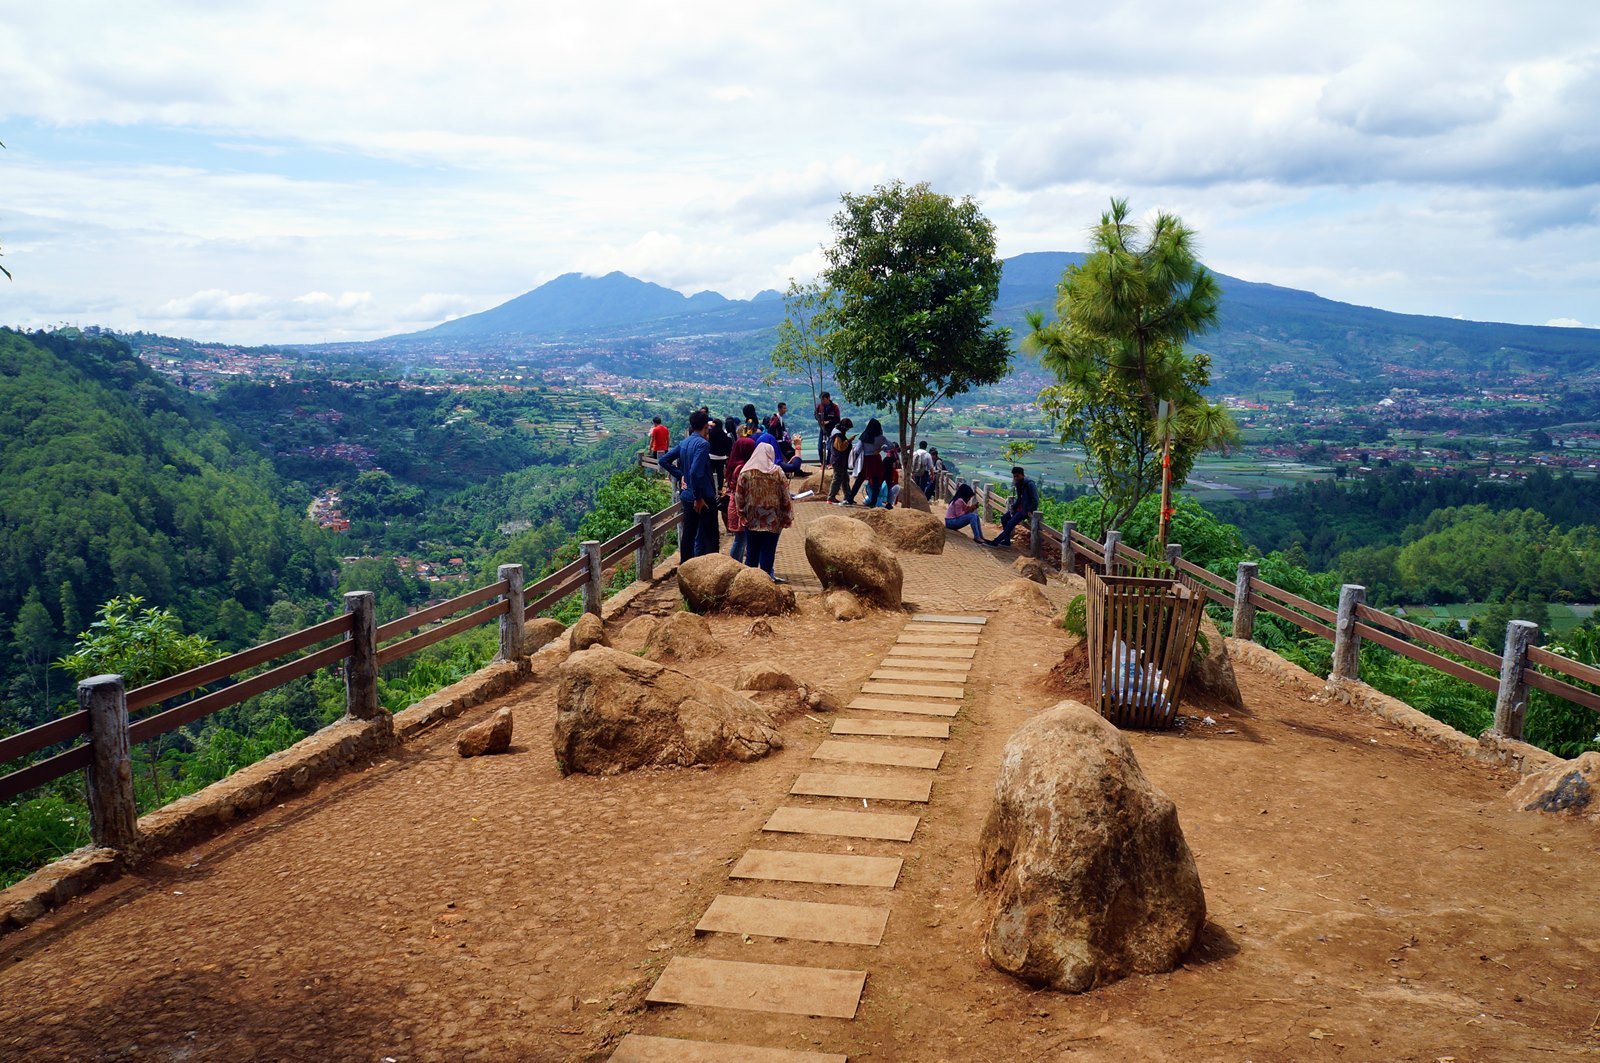 Tebing Keraton soon to be most popular destination to visit in Bandung.